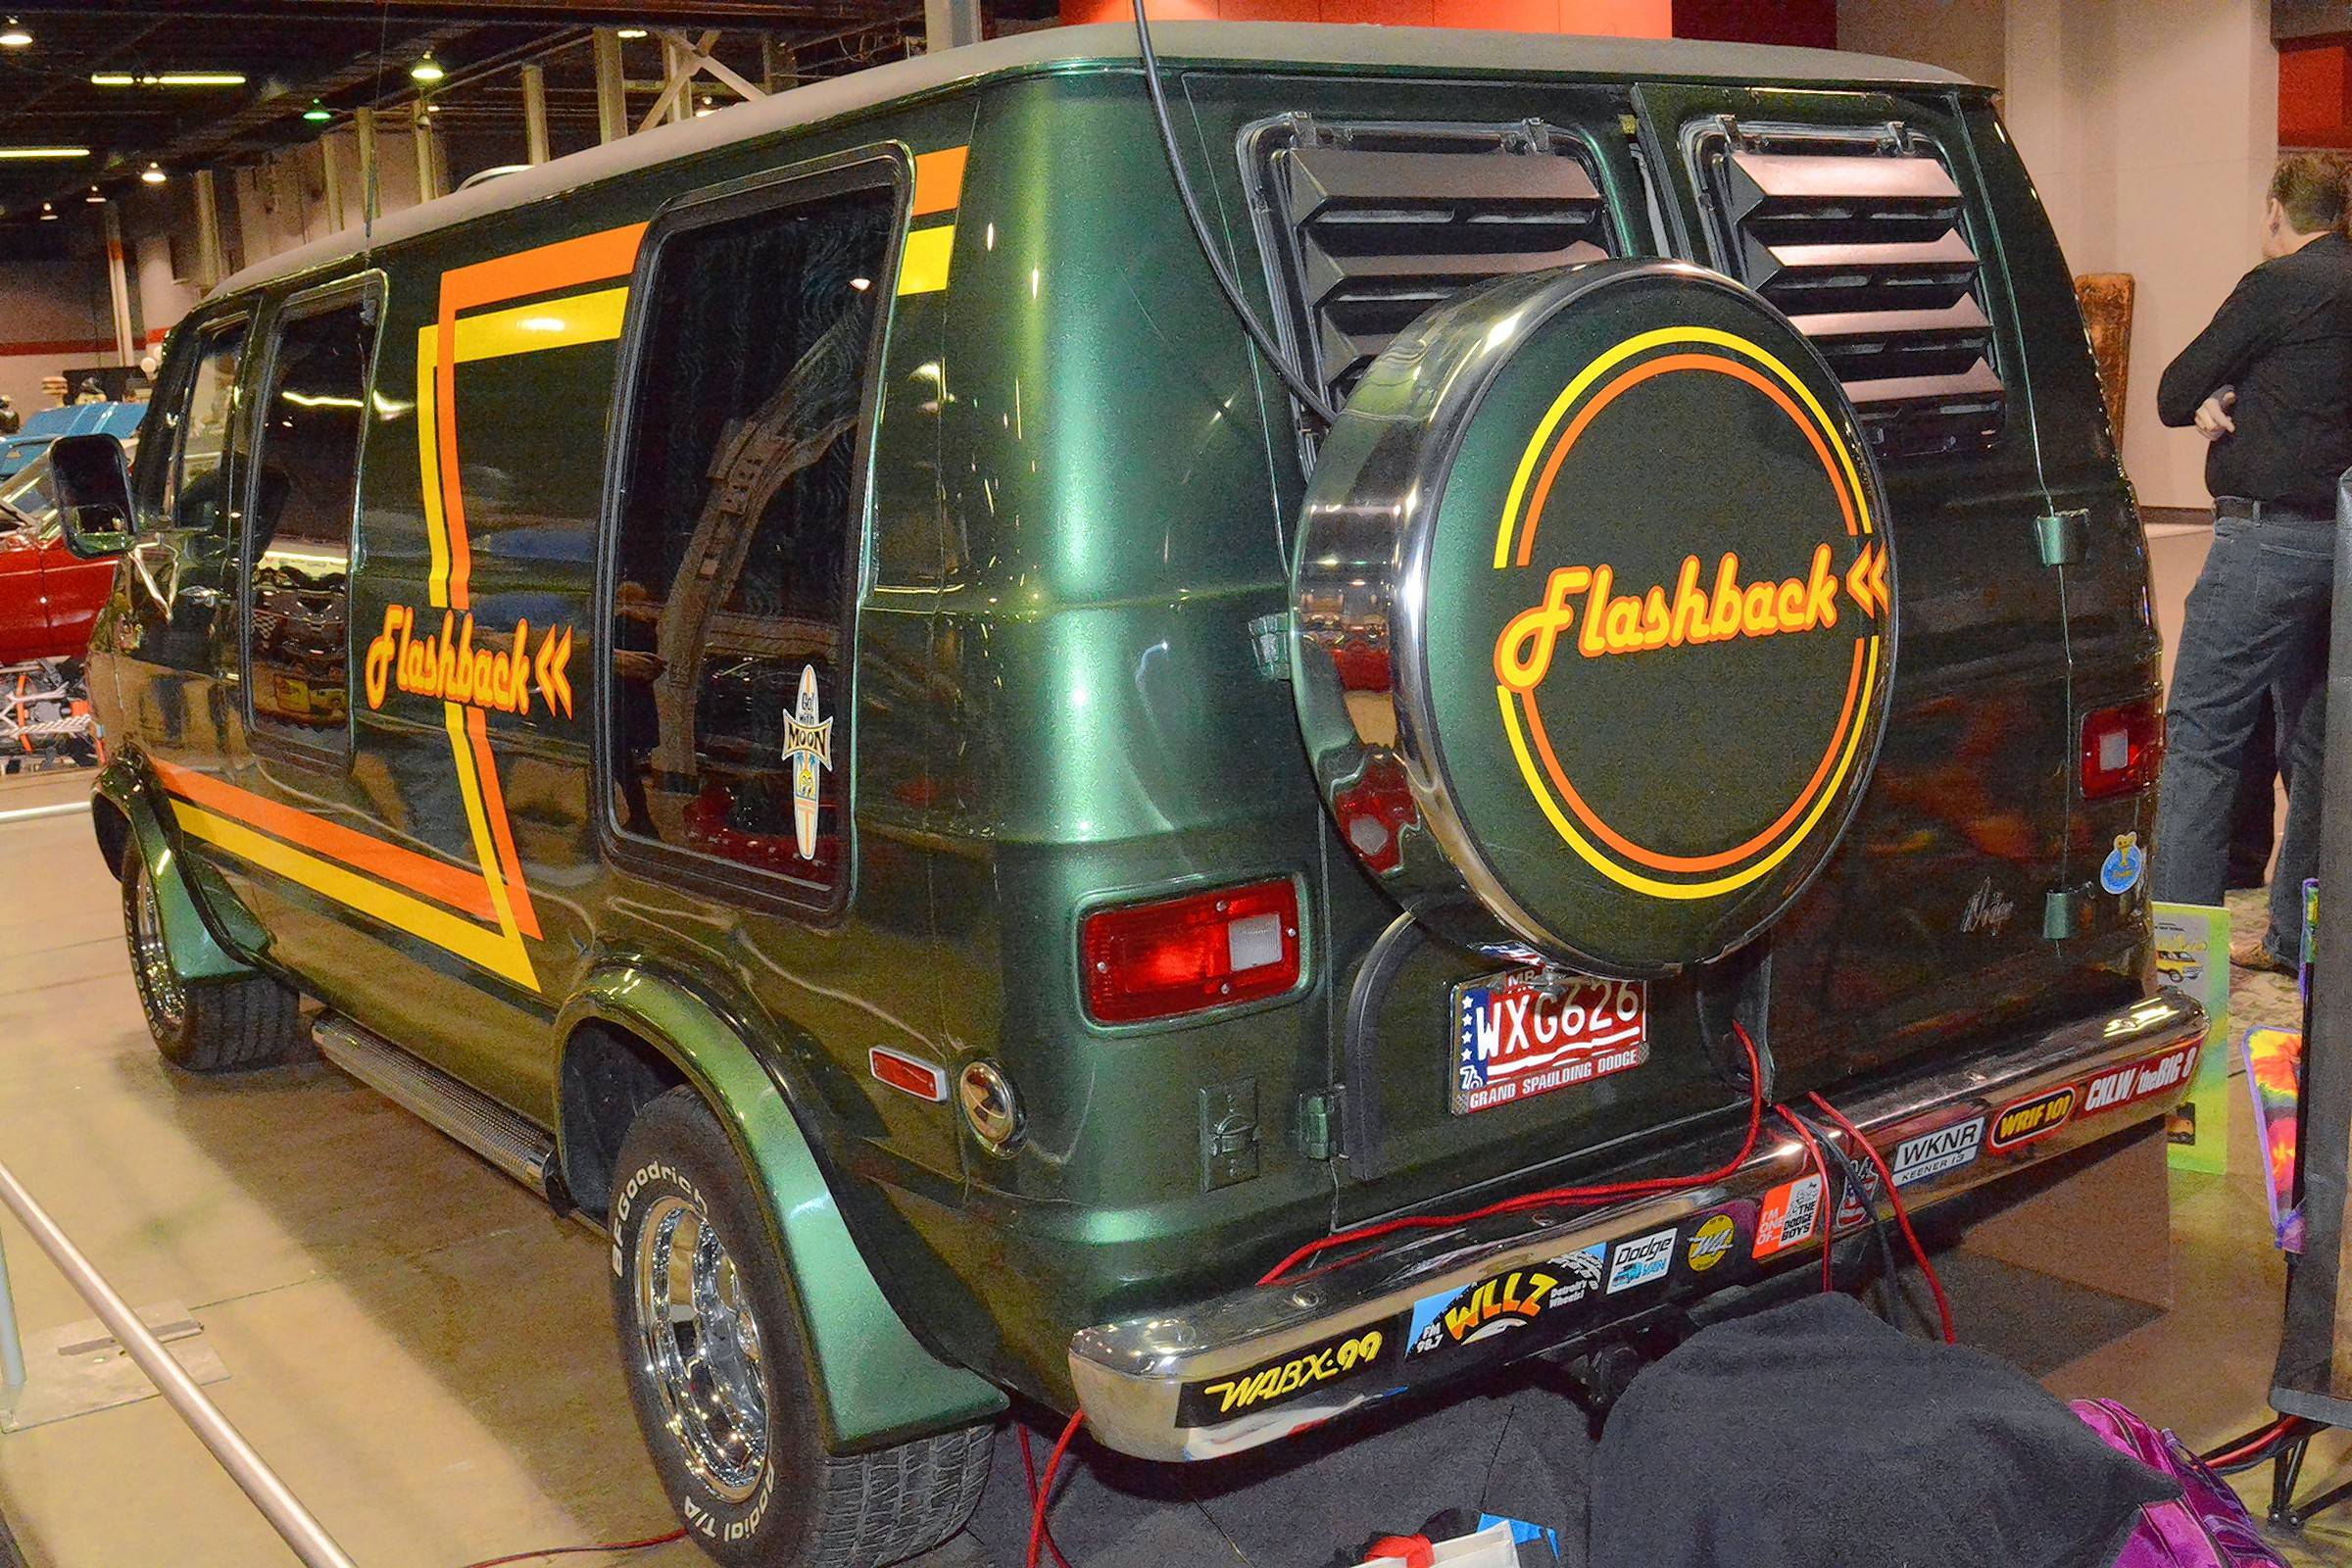 A base Tradesman van retailed for $4,586 in 1977. The Street Van package would tack an additional $980.90.